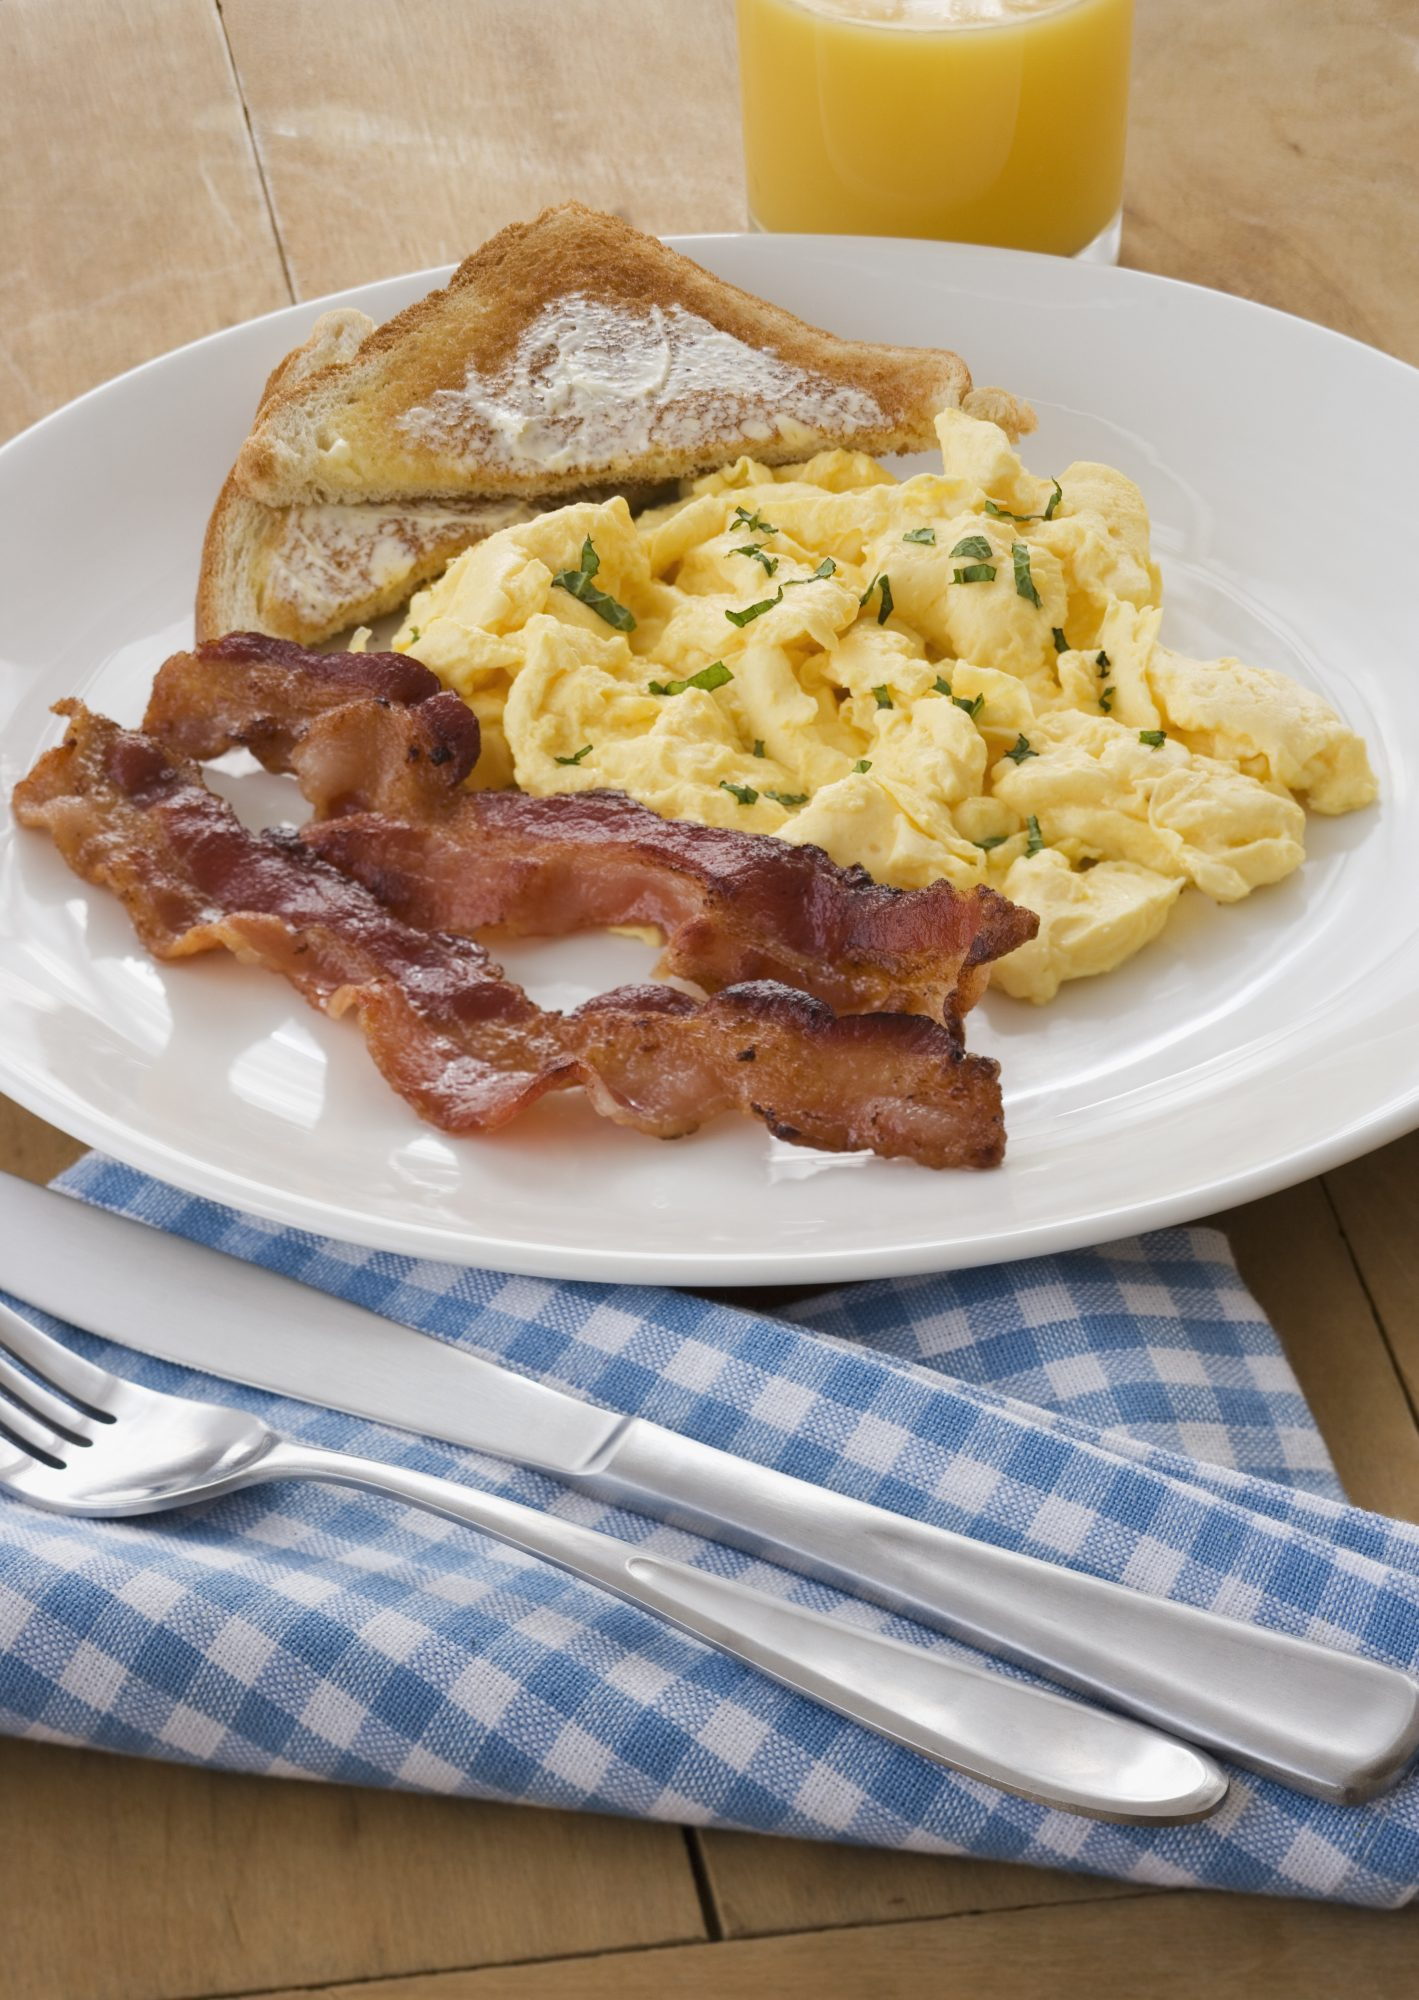 How To Make the Best-Ever Scrambled Eggs